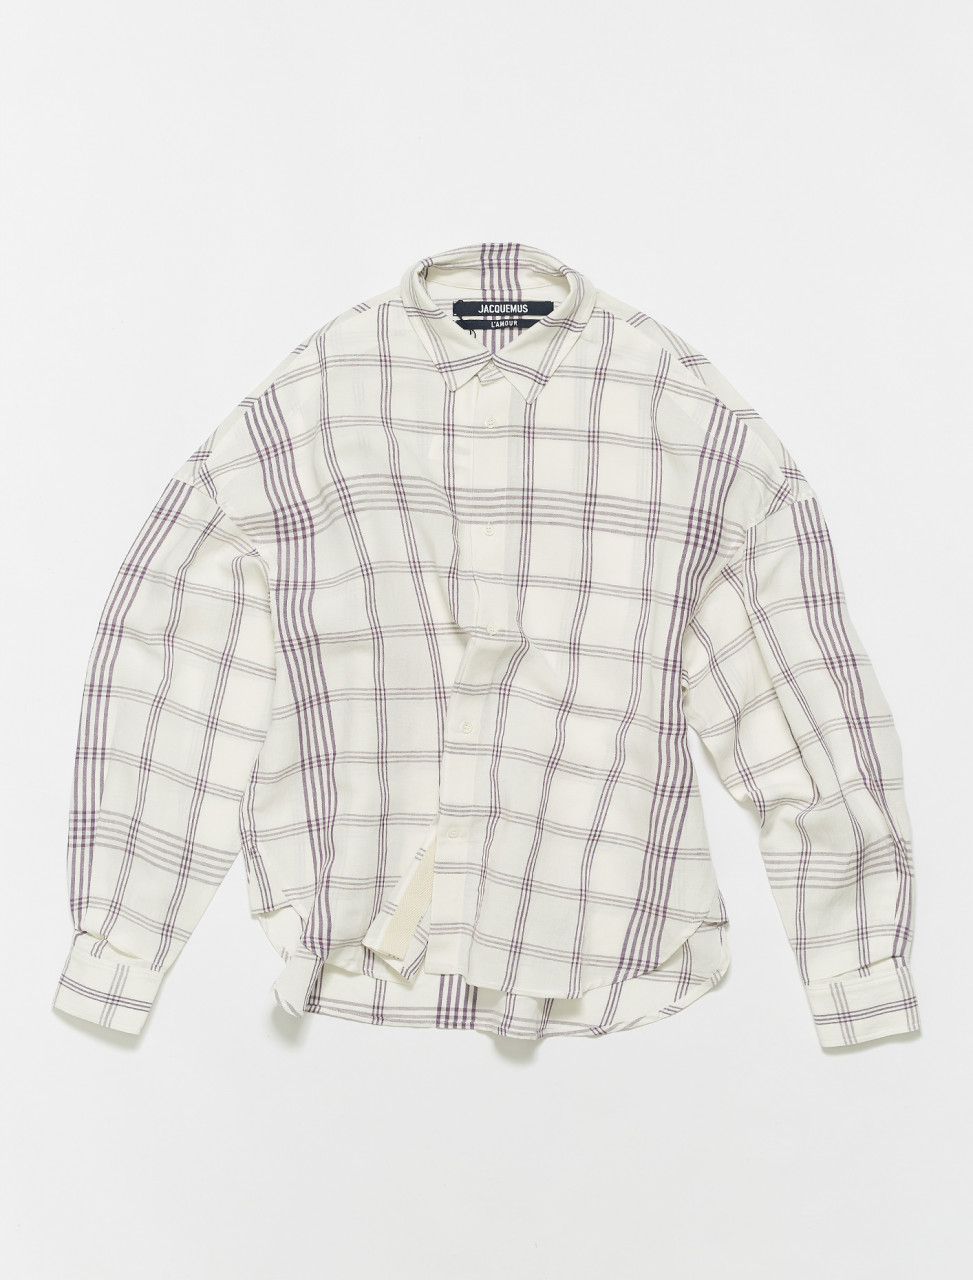 215SH05-215-125613 JACQUEMUS LA CHEMISE SANTON WHITE PURPLE CHECKS